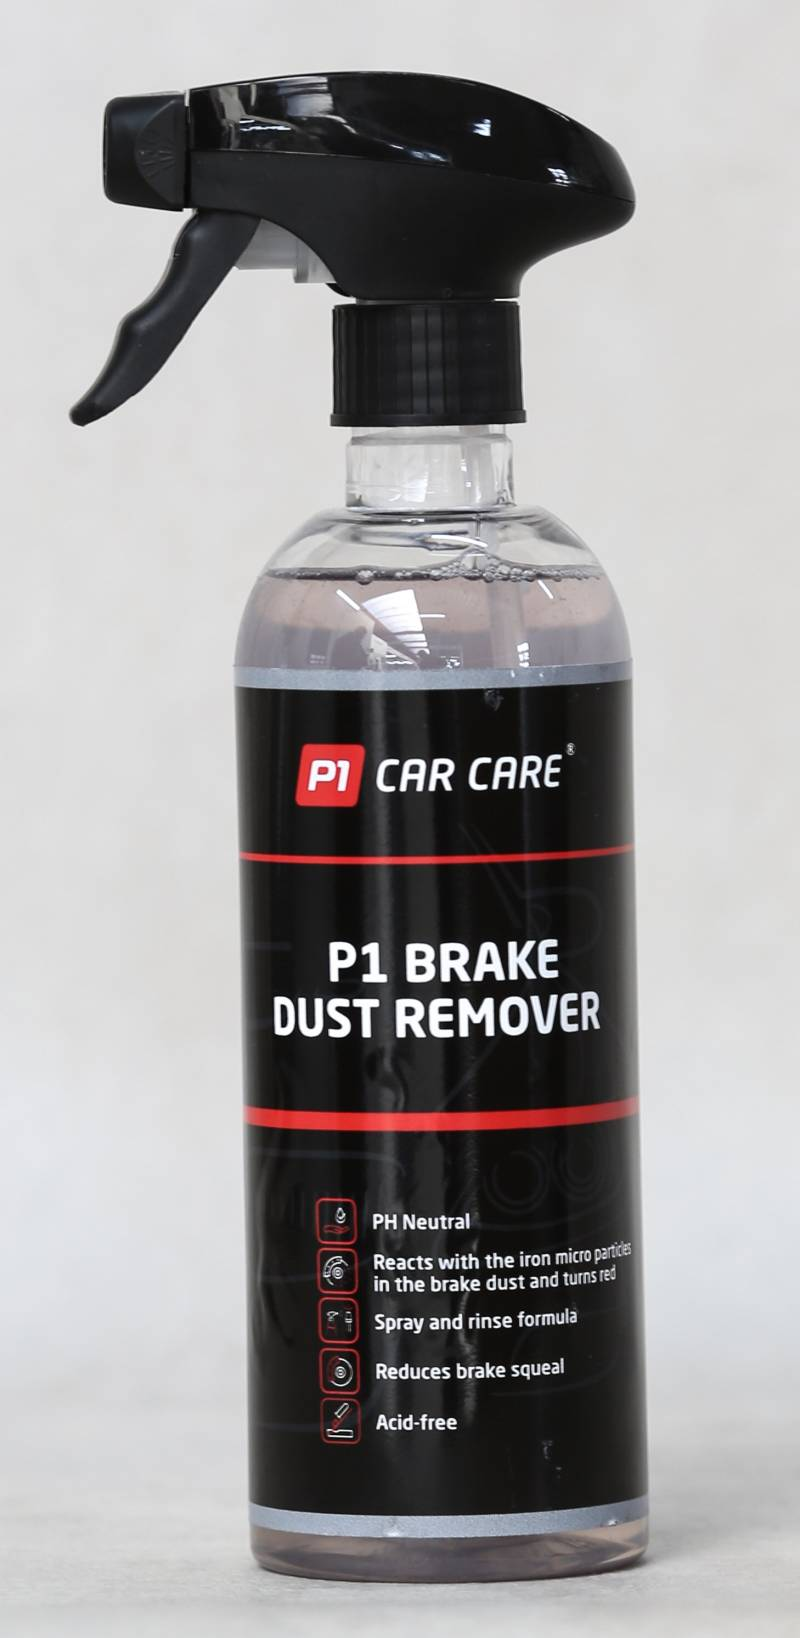 P1 Car Care Brake Dust Remover, 1 x 500ml